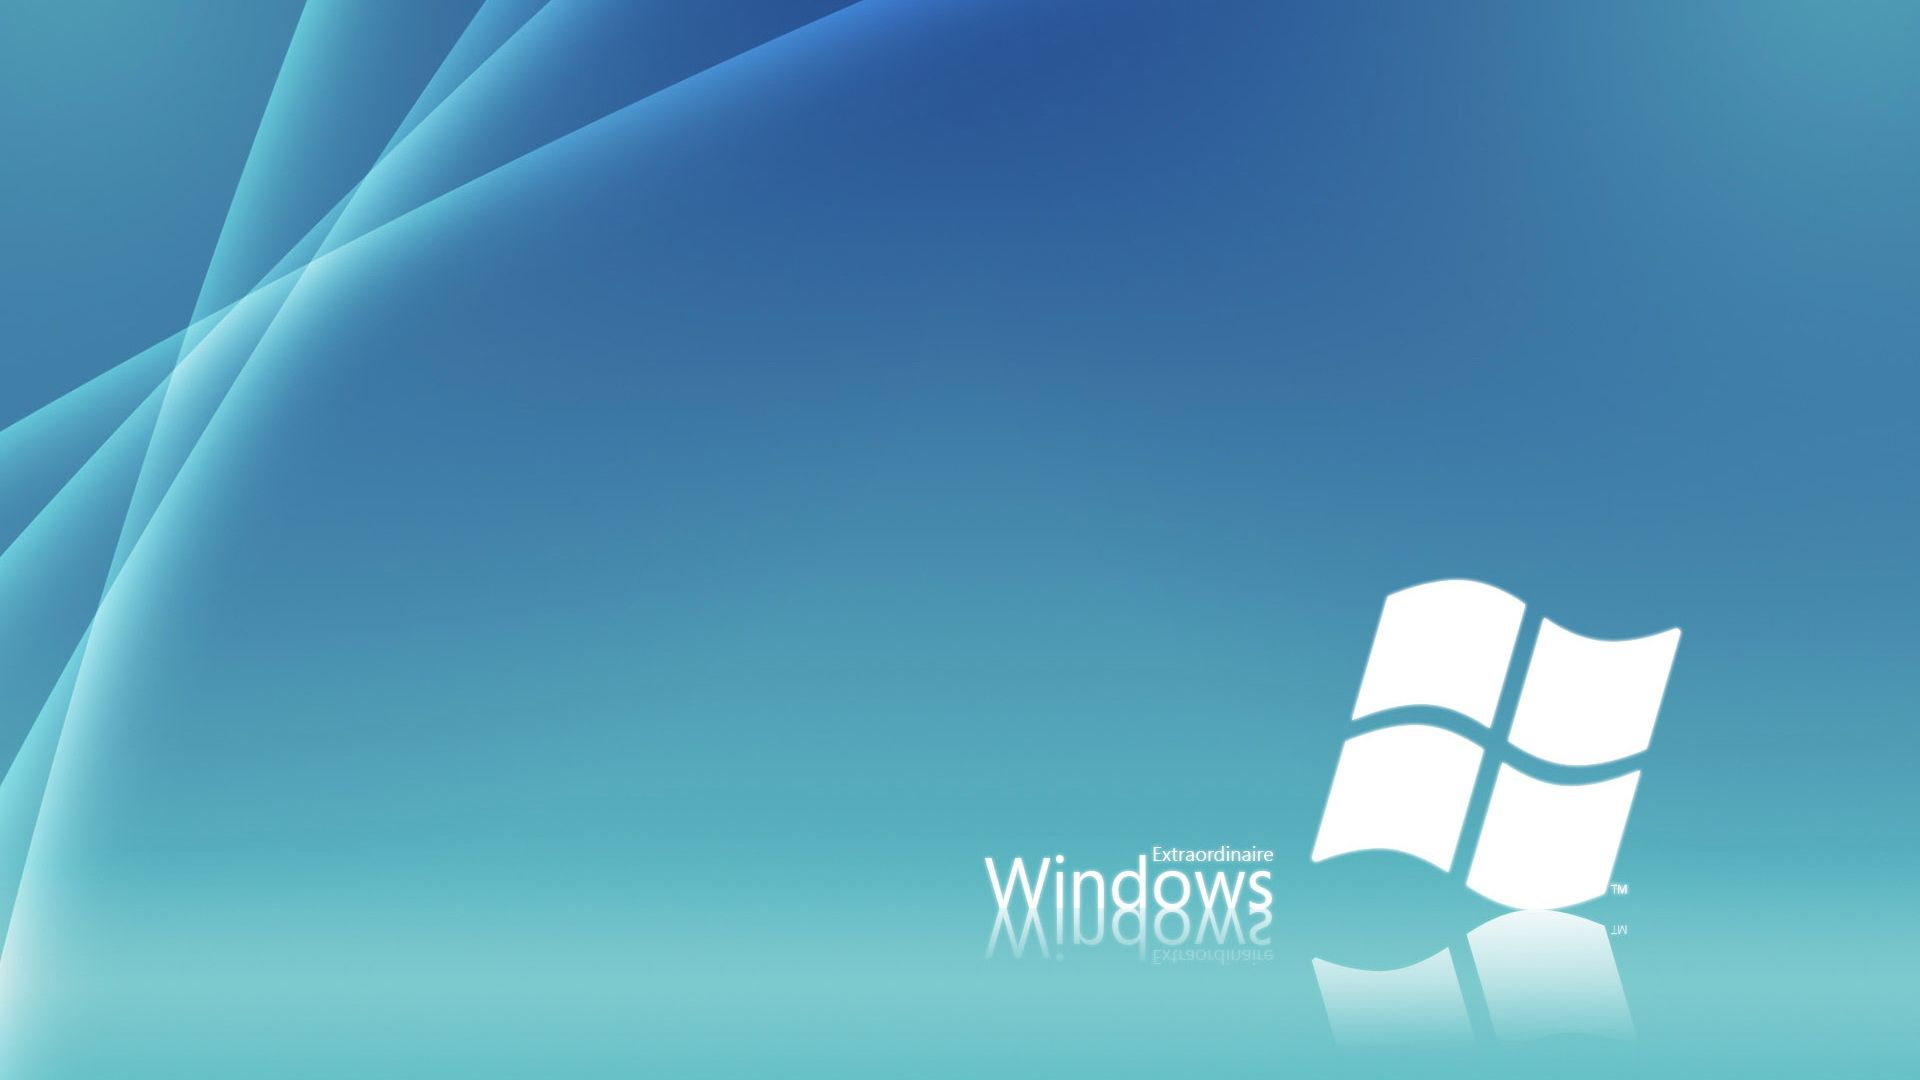 Windows Span full hd wallpaper